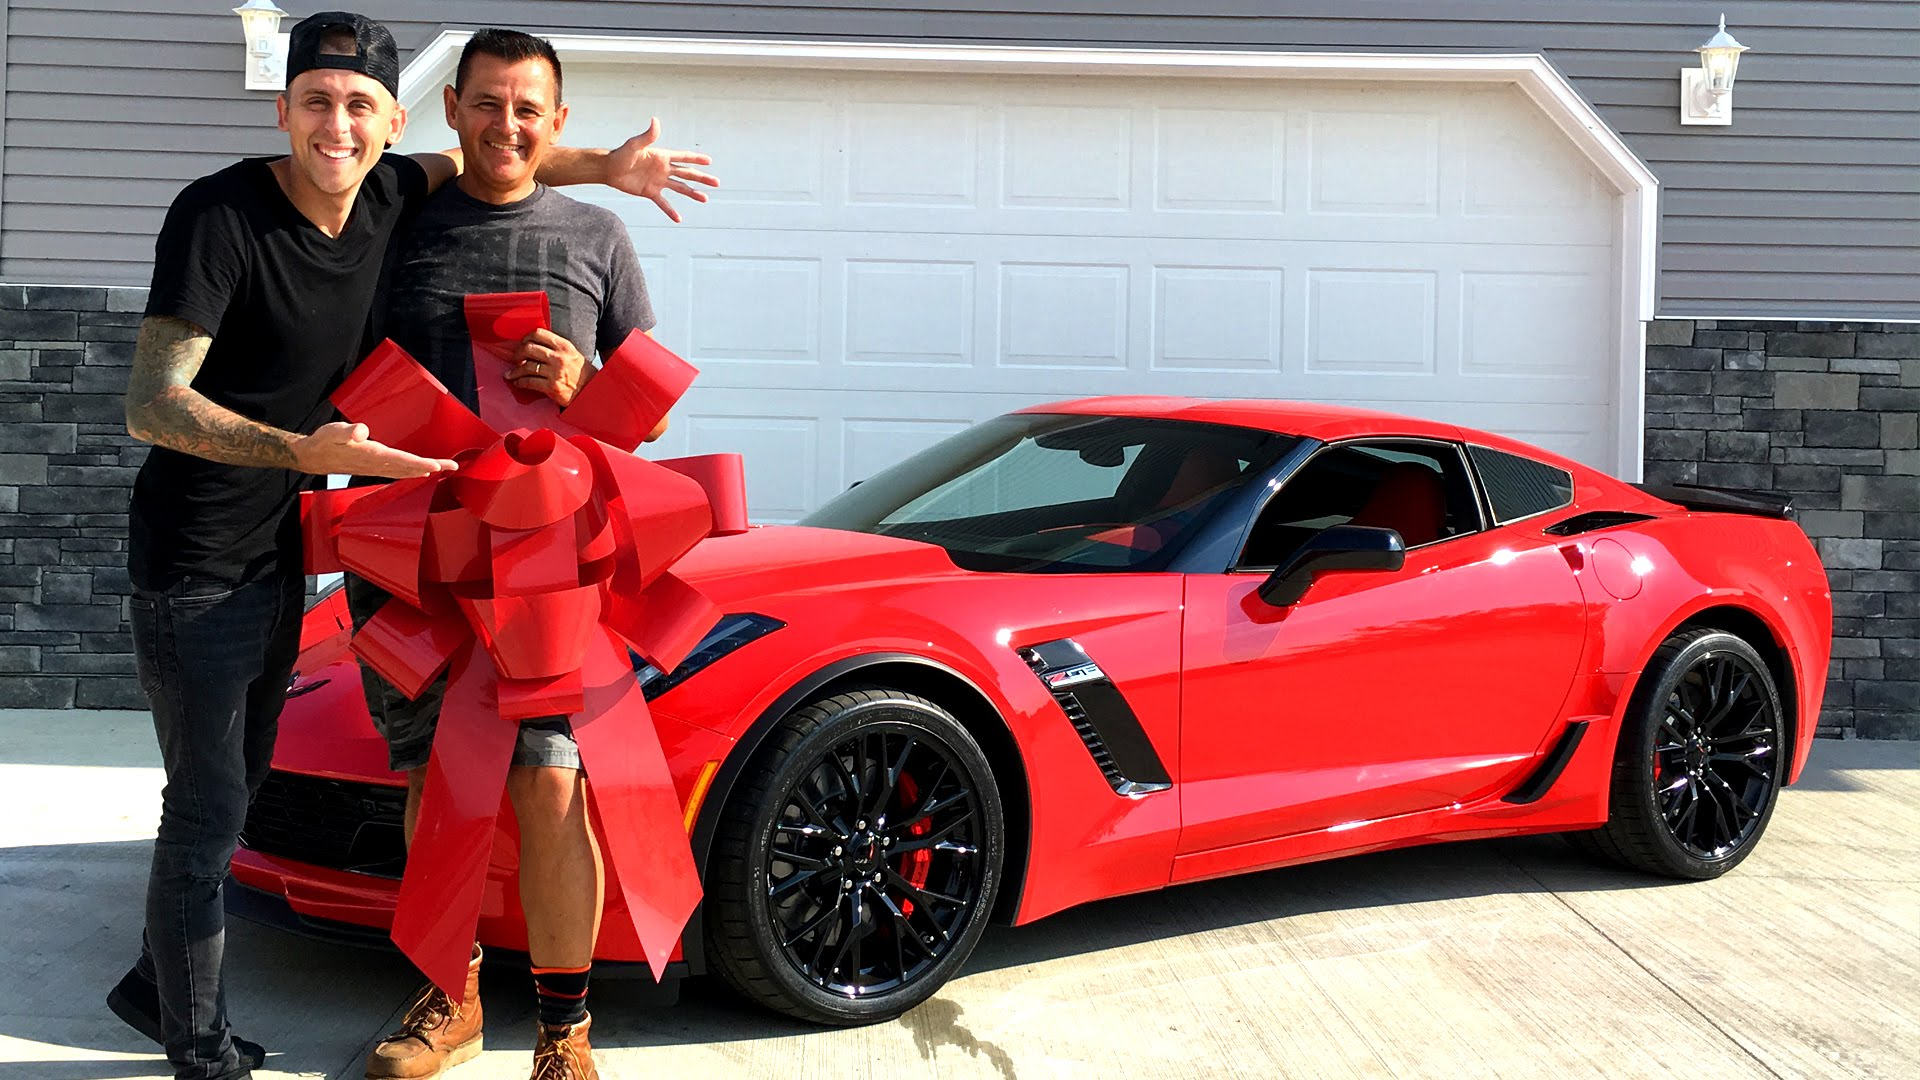 Roman atwood buys a corvette z06 for his father 39 s birthday autoevolution